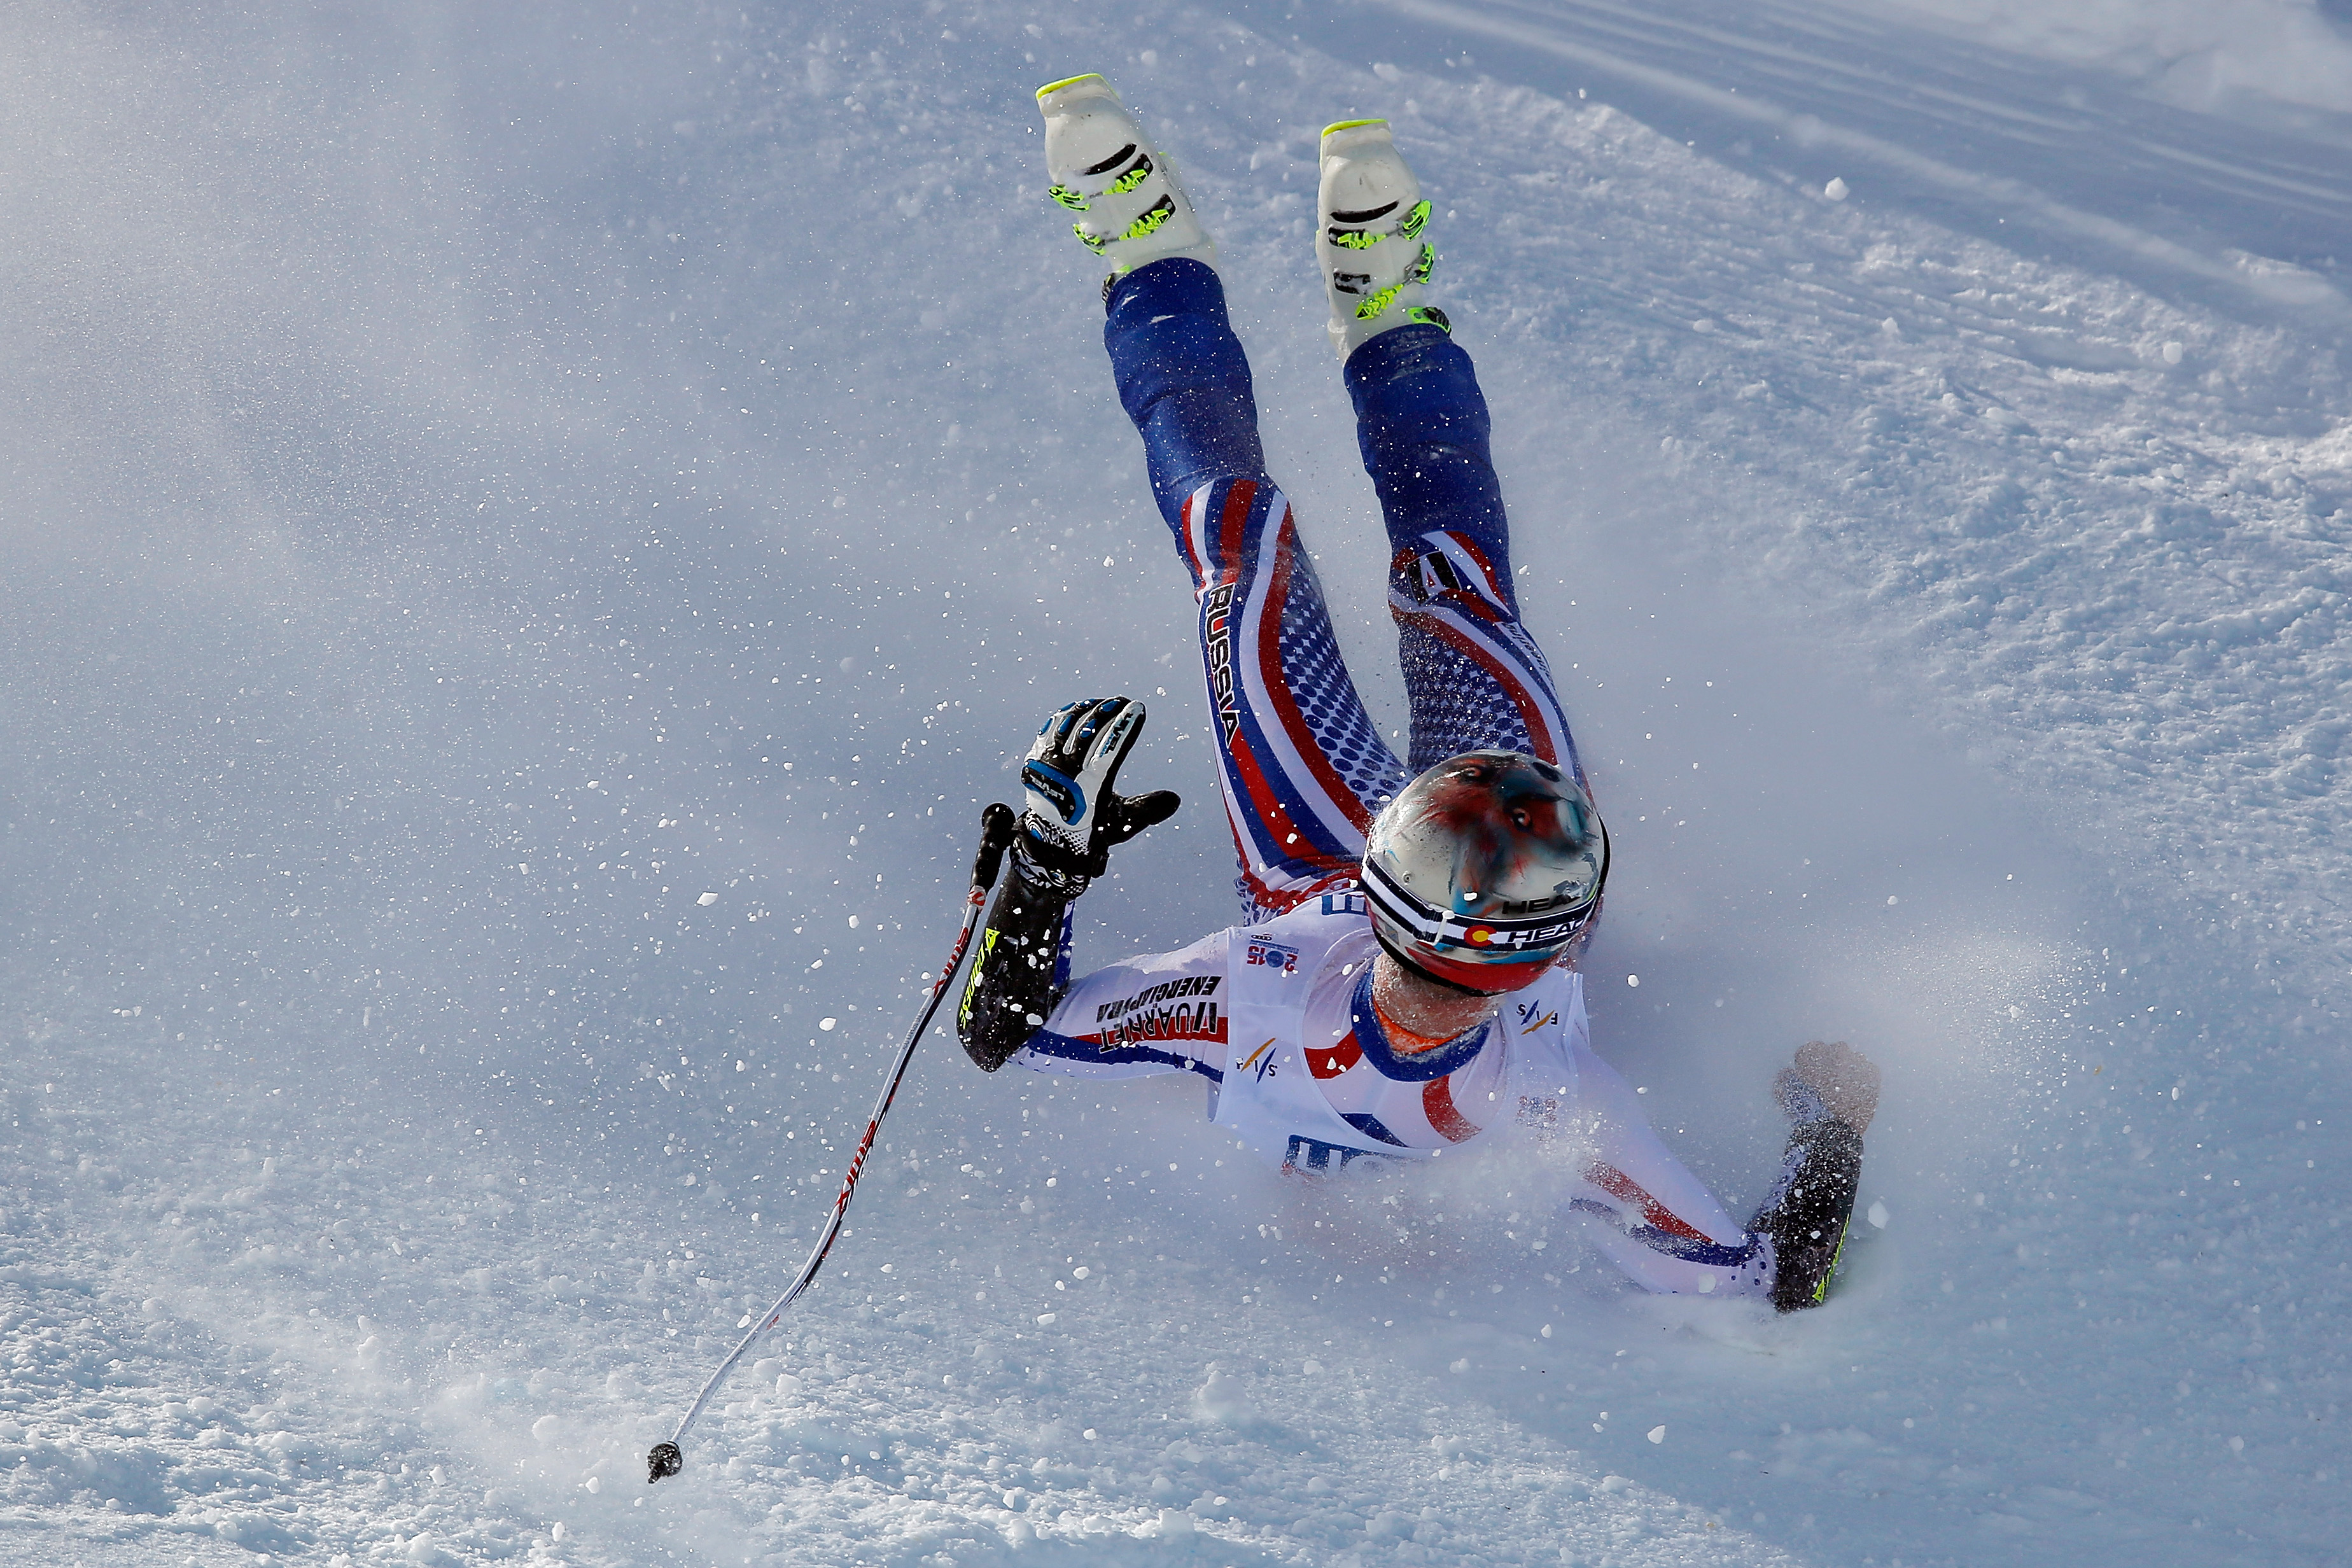 Alexander Glebov of Russia crashes during the Men's Super-G on the Birds of Prey racecourse on Day 4 of the 2015 FIS Alpine World Ski Championships on February 5, 2015 in Beaver Creek, Colorado.  (Photo by Doug Pensinger/Getty Images)